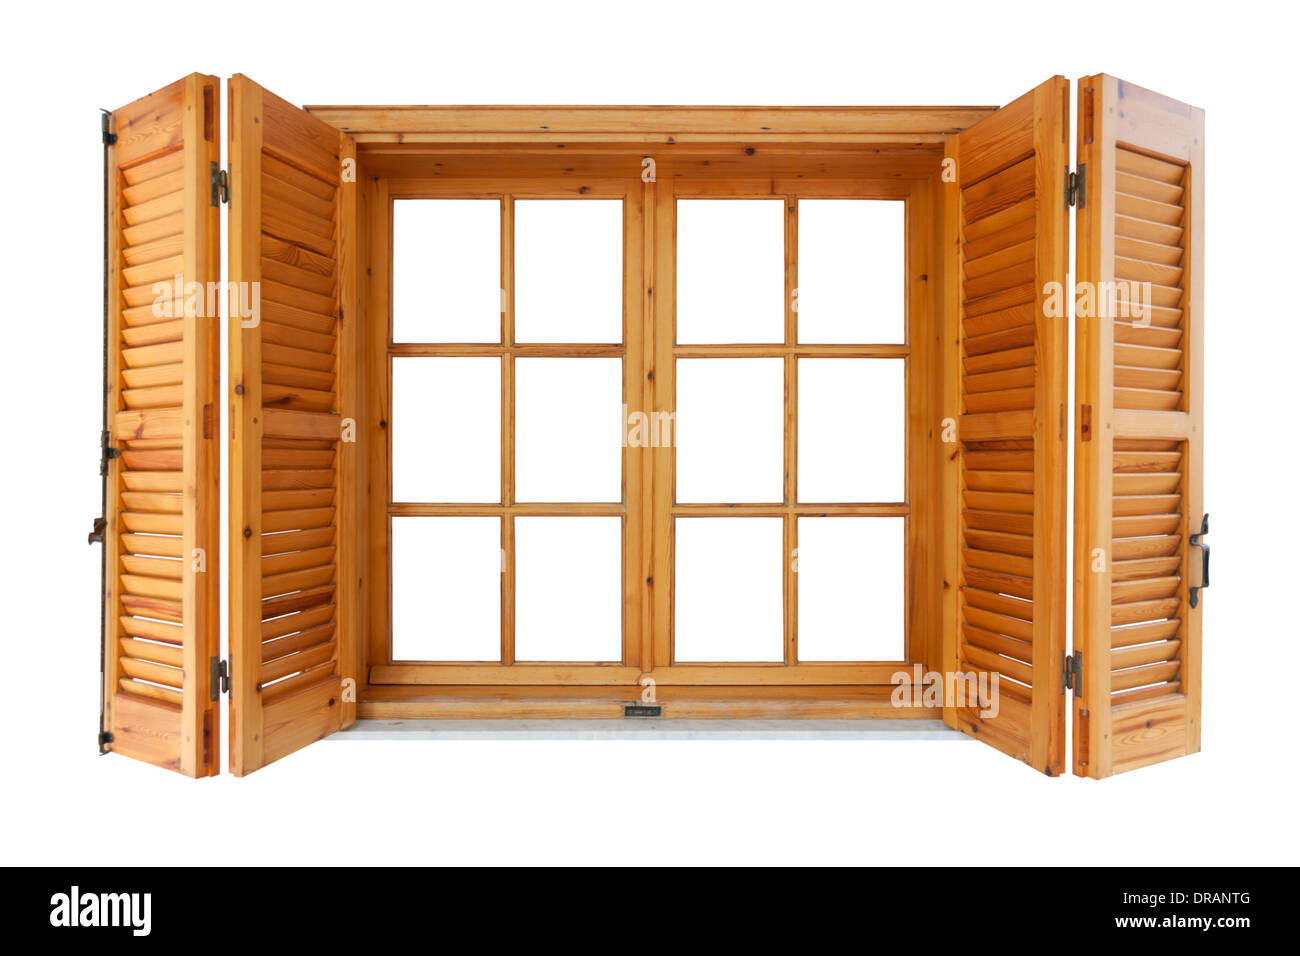 Wooden window with shutters exterior side isolated on white background - Stock Image